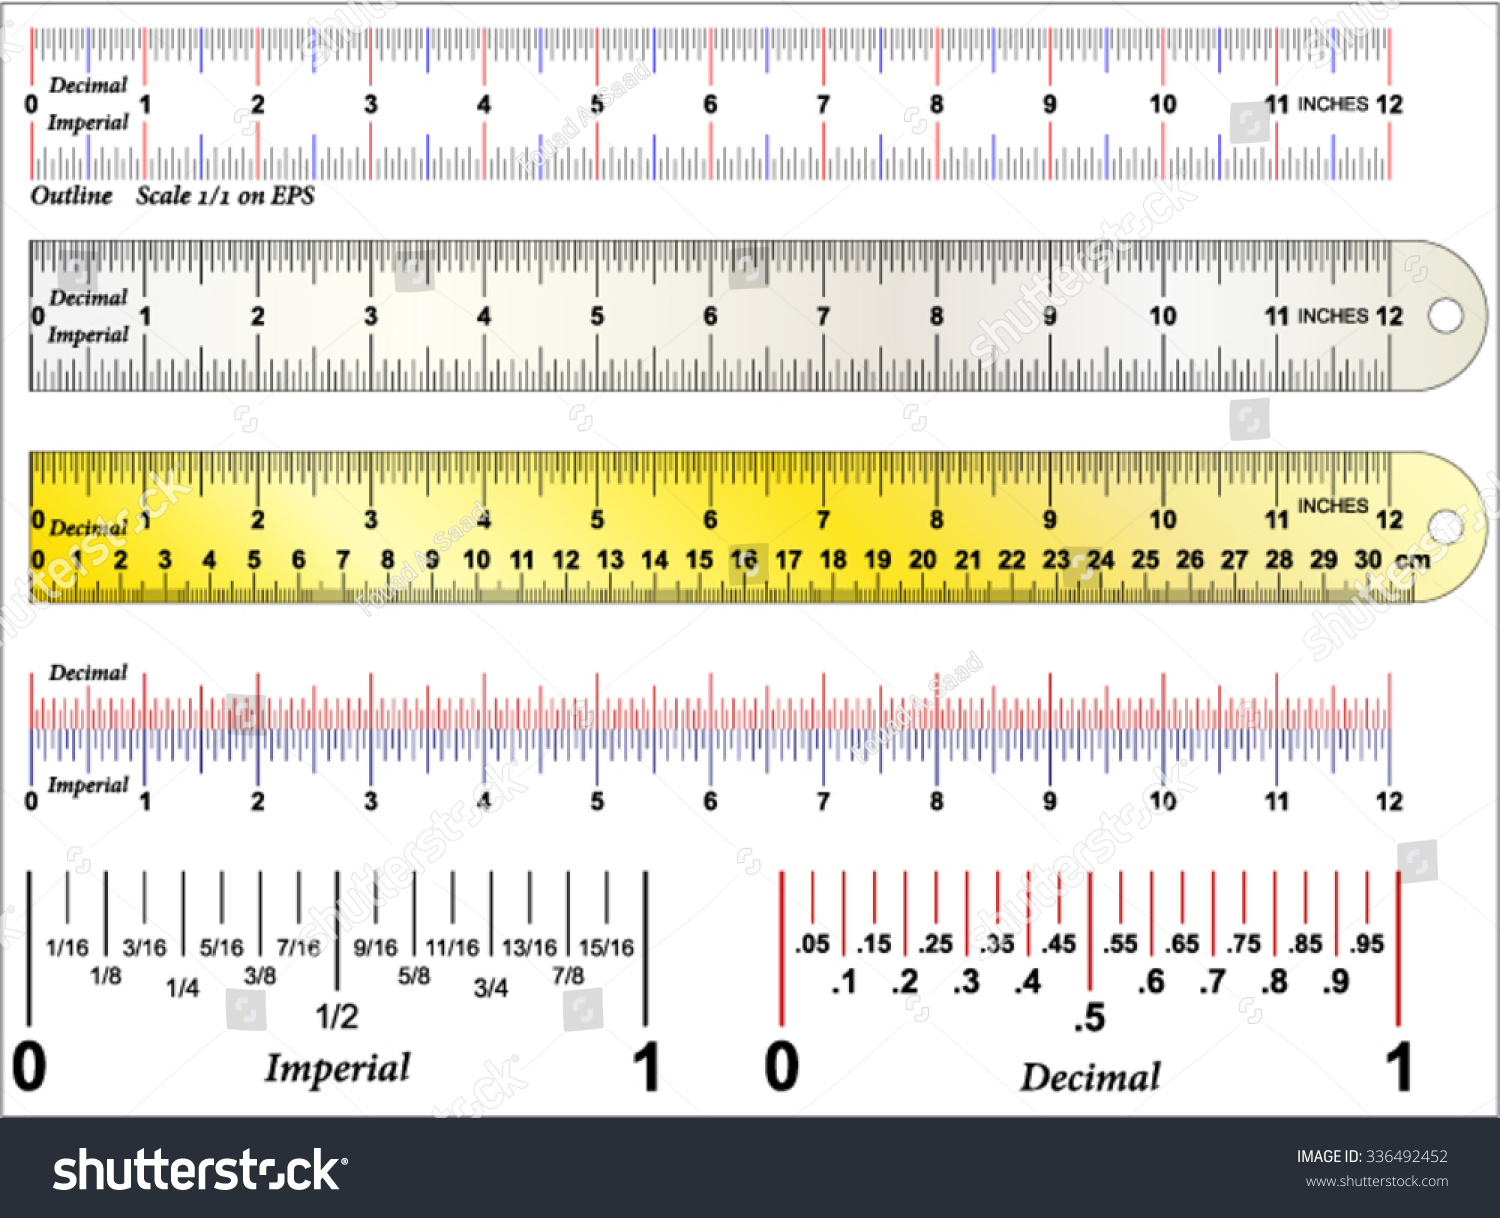 Imperial And Decimal Inch Ruler Stock Vector Illustration